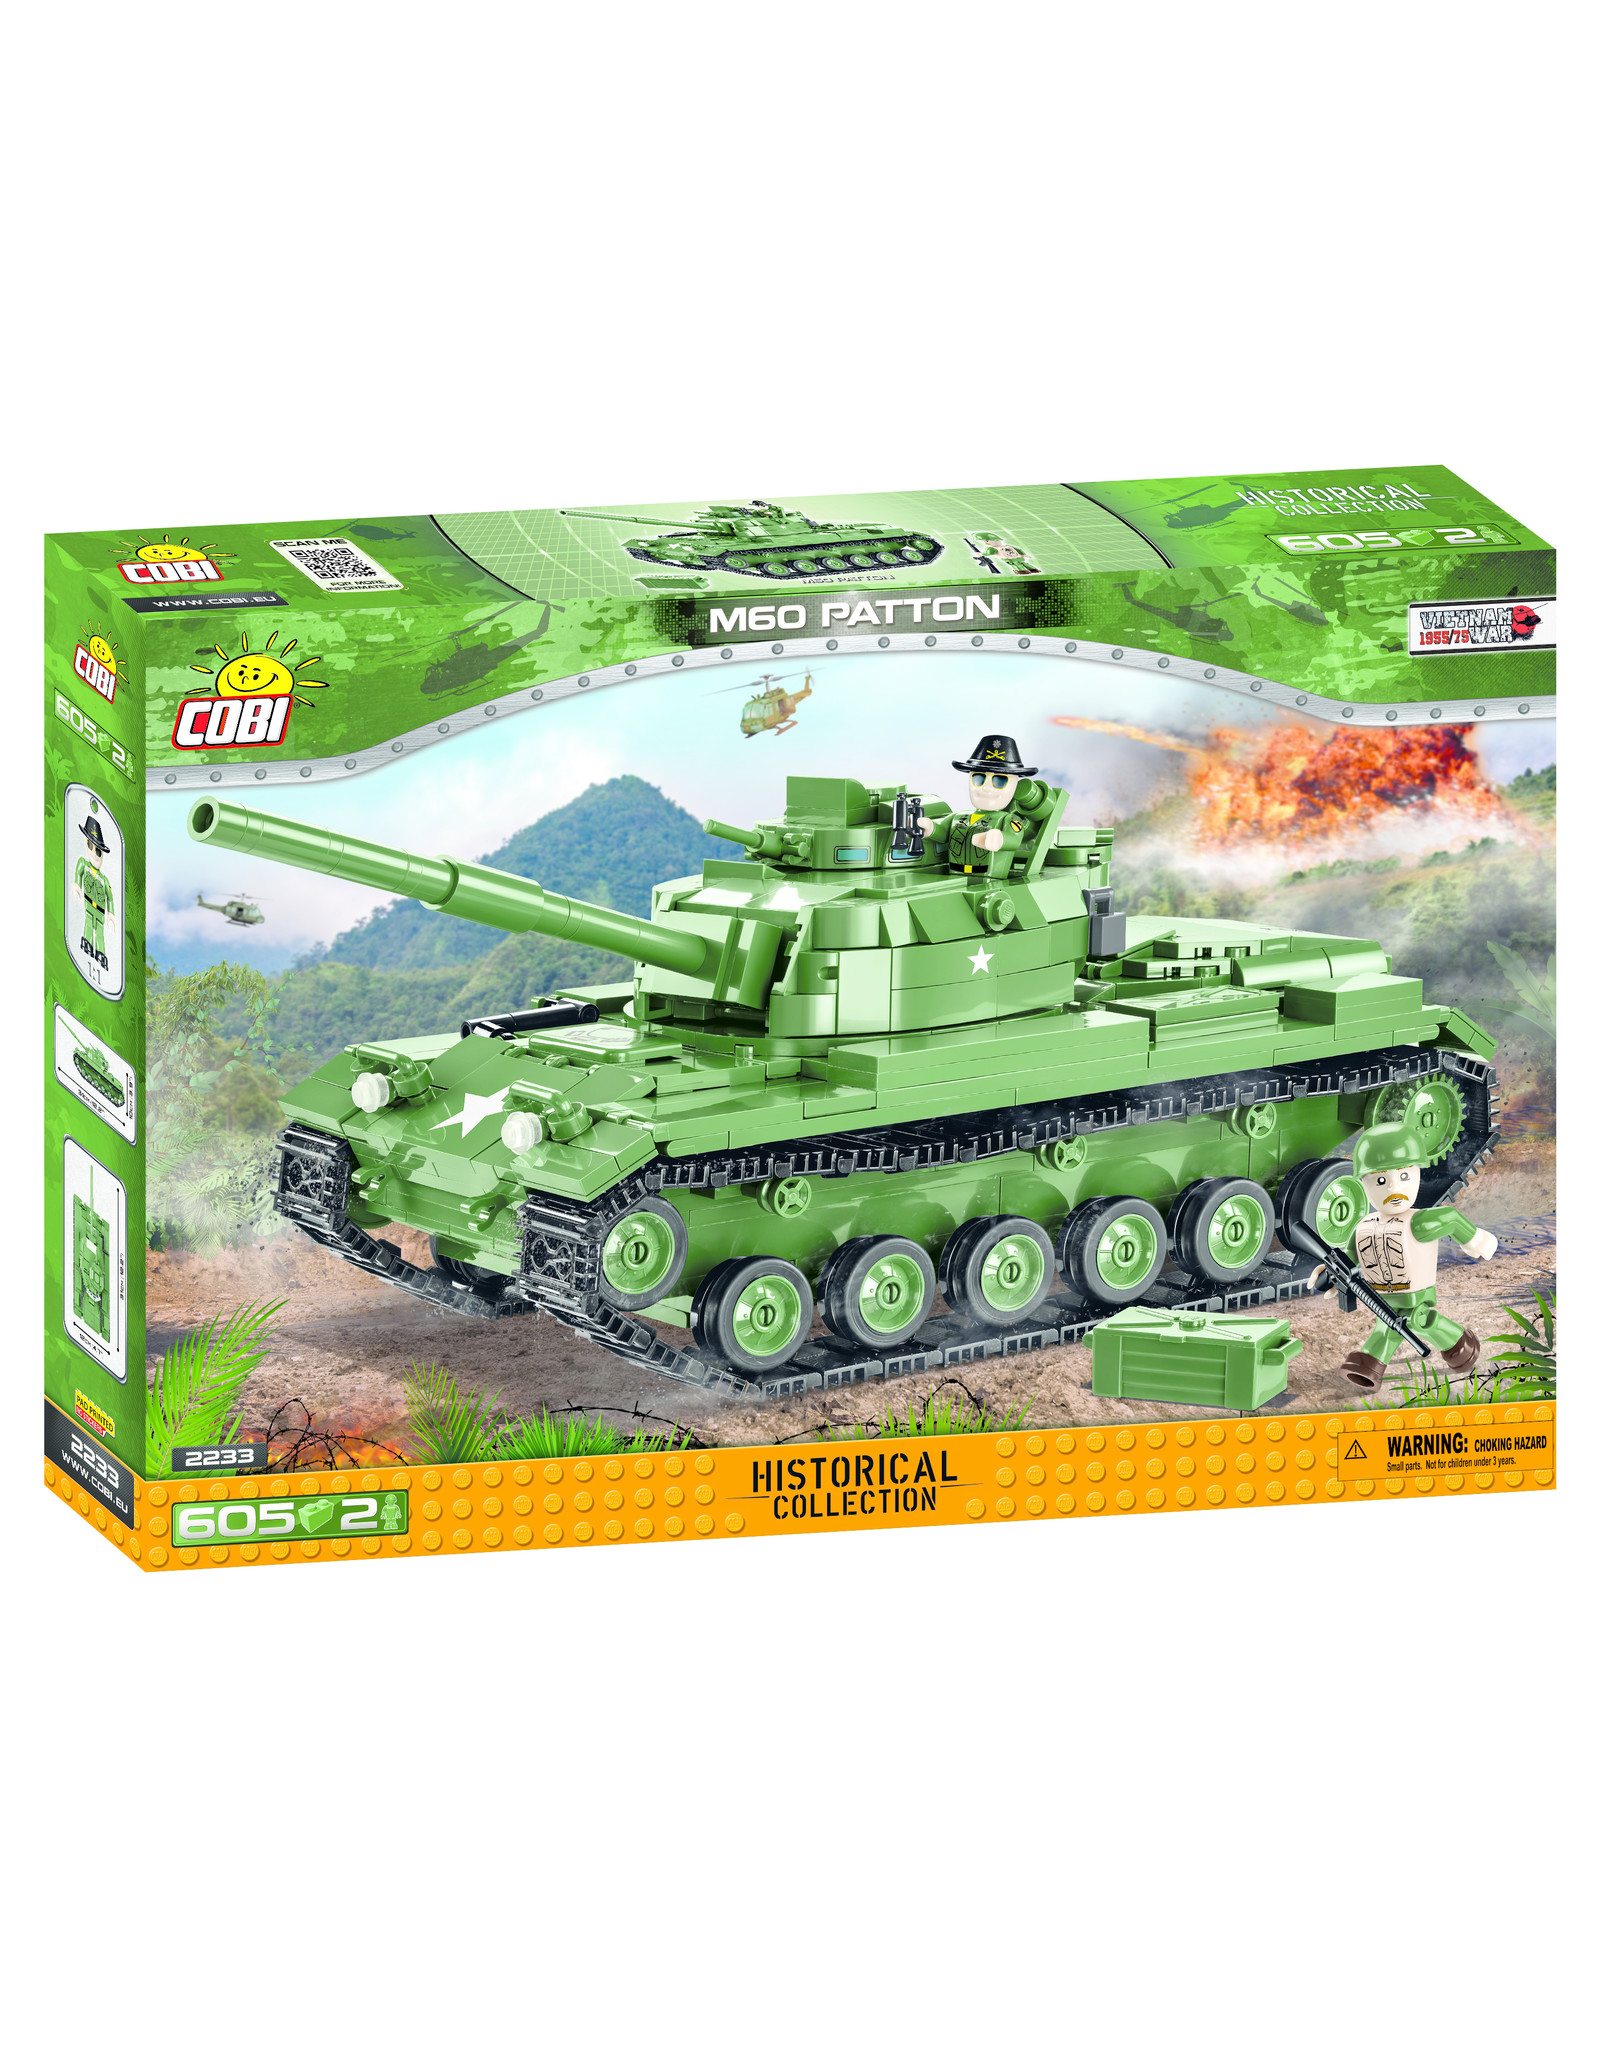 COBI COBI 2233 M60 Patton